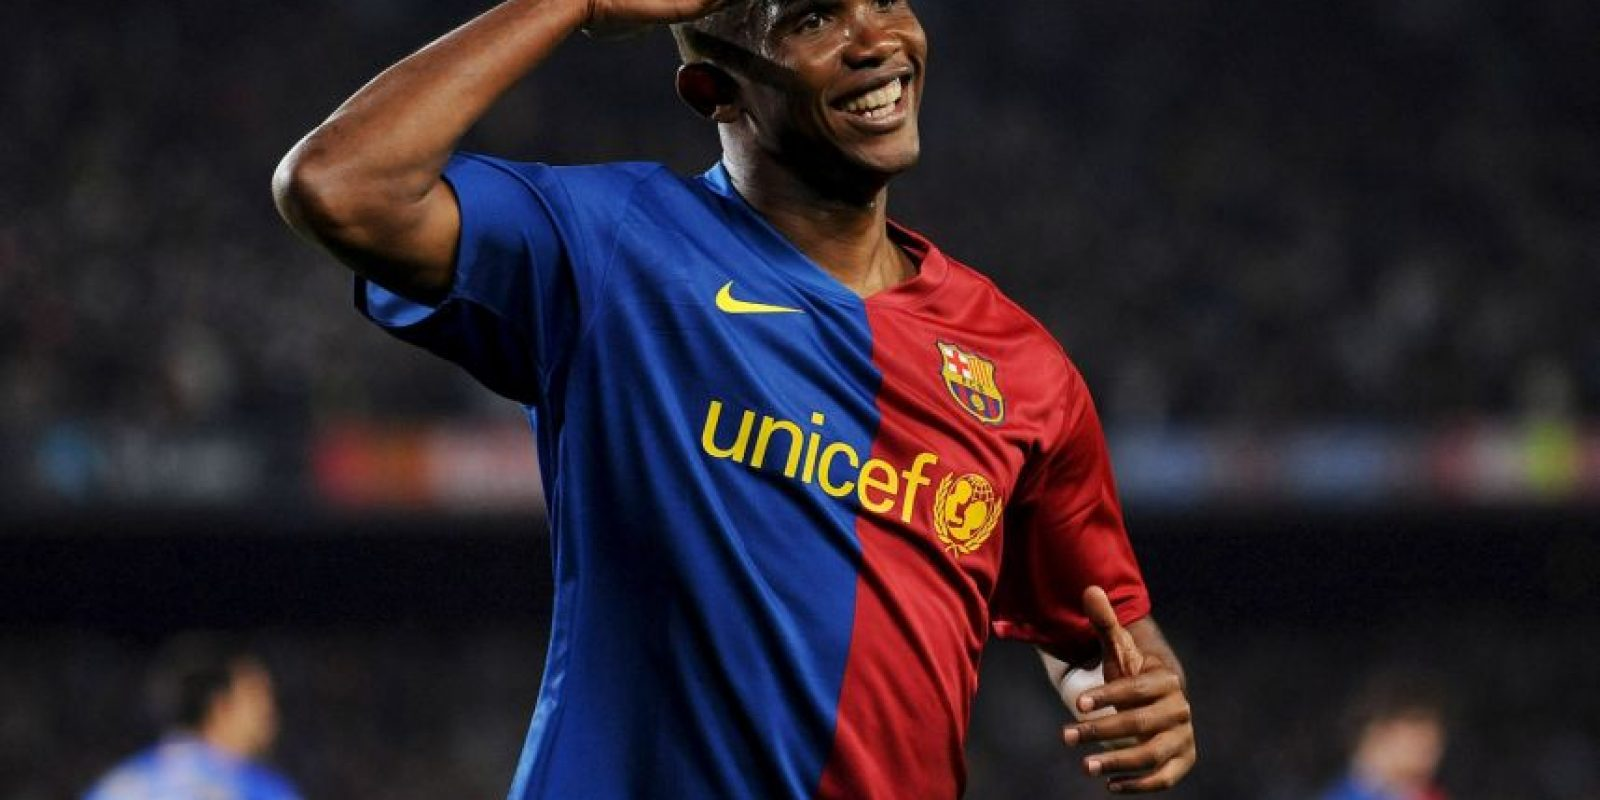 Samuel Eto'o – 10 de marzo de 1981. Foto: Getty Images